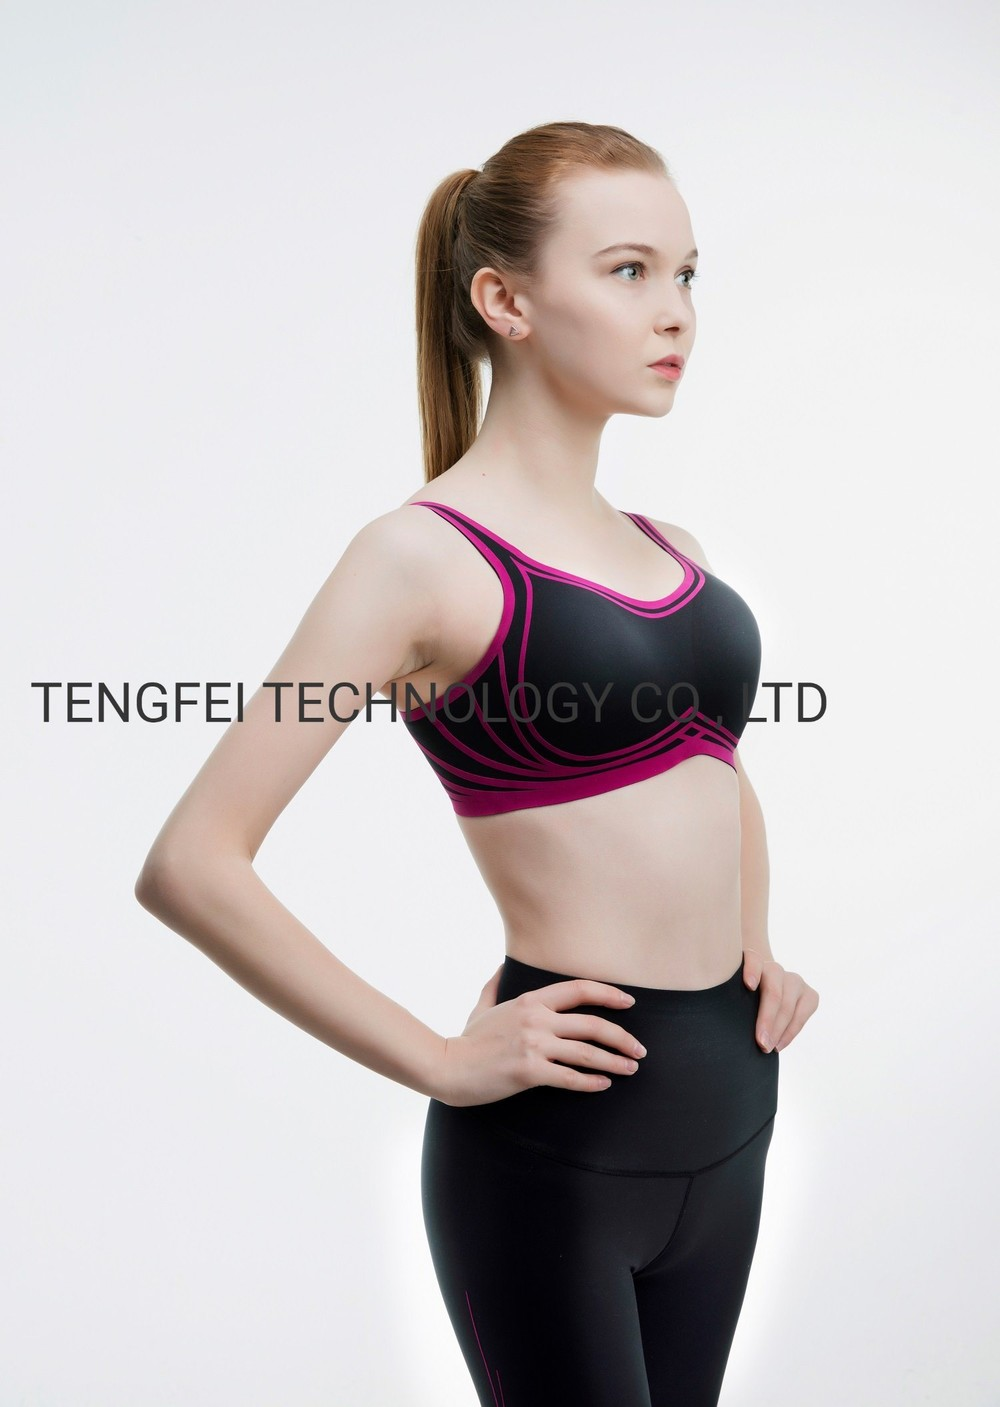 Ladies′ Knitted Senselast 3D Wire Free Comfortable Sports Yoga Bra and Legging Set